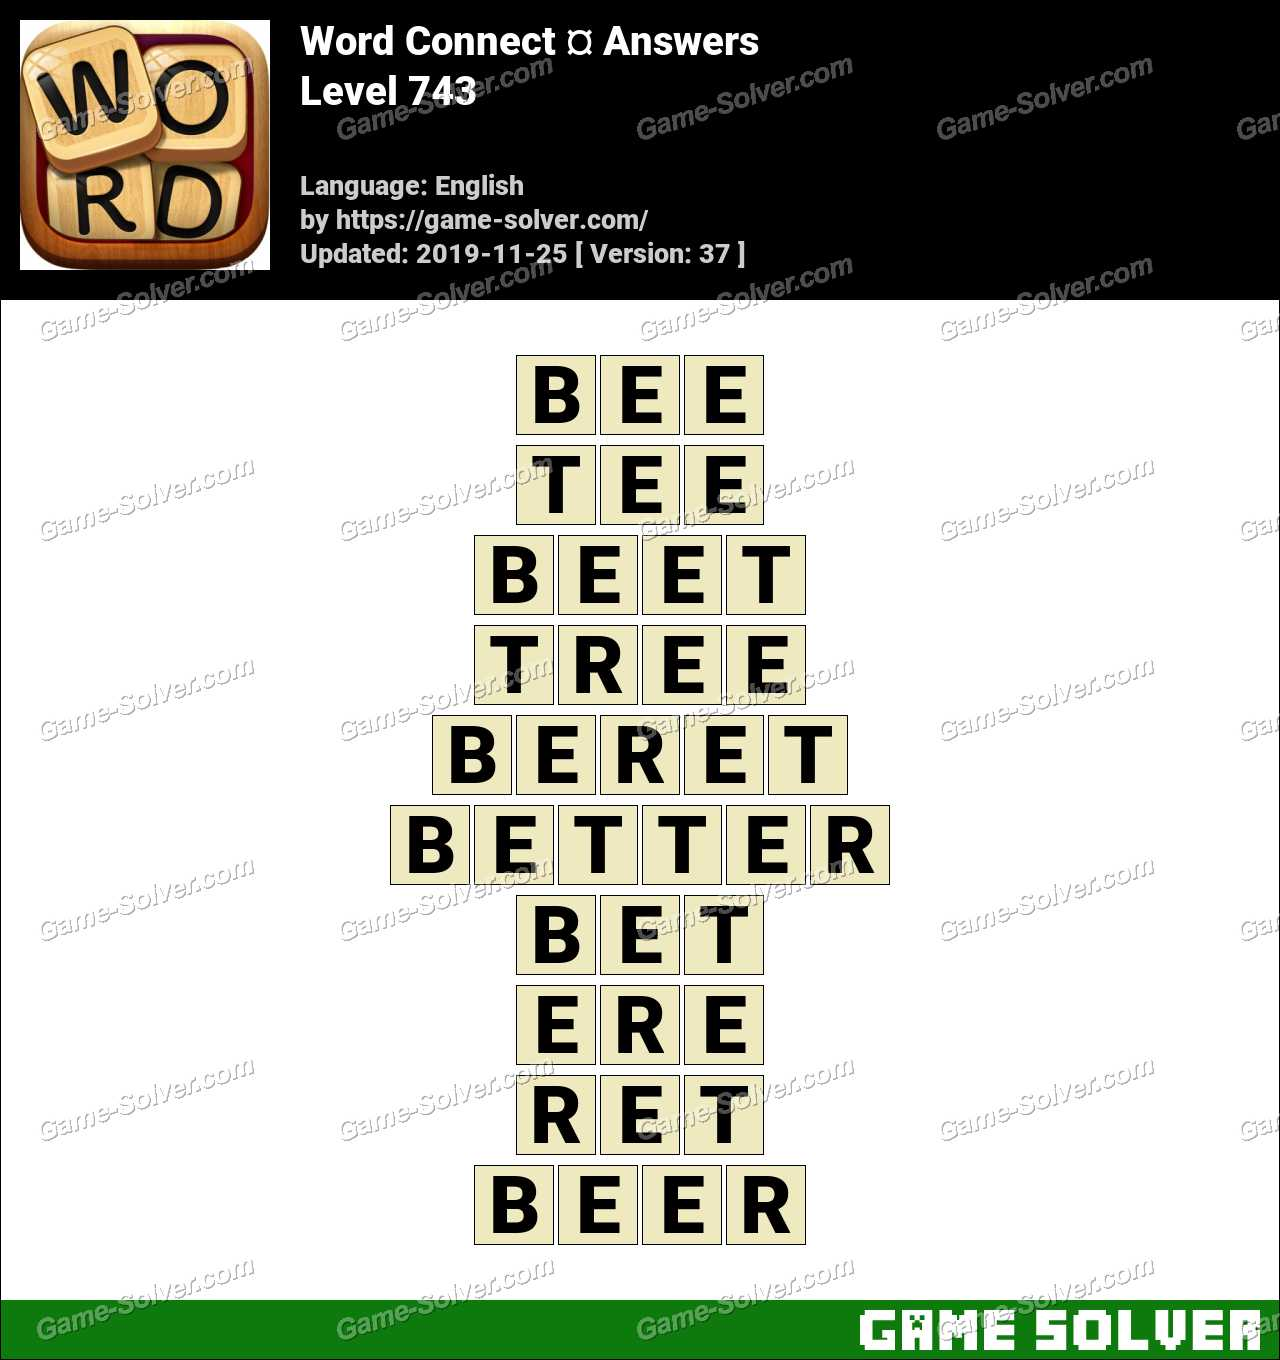 Word Connect Level 743 Answers